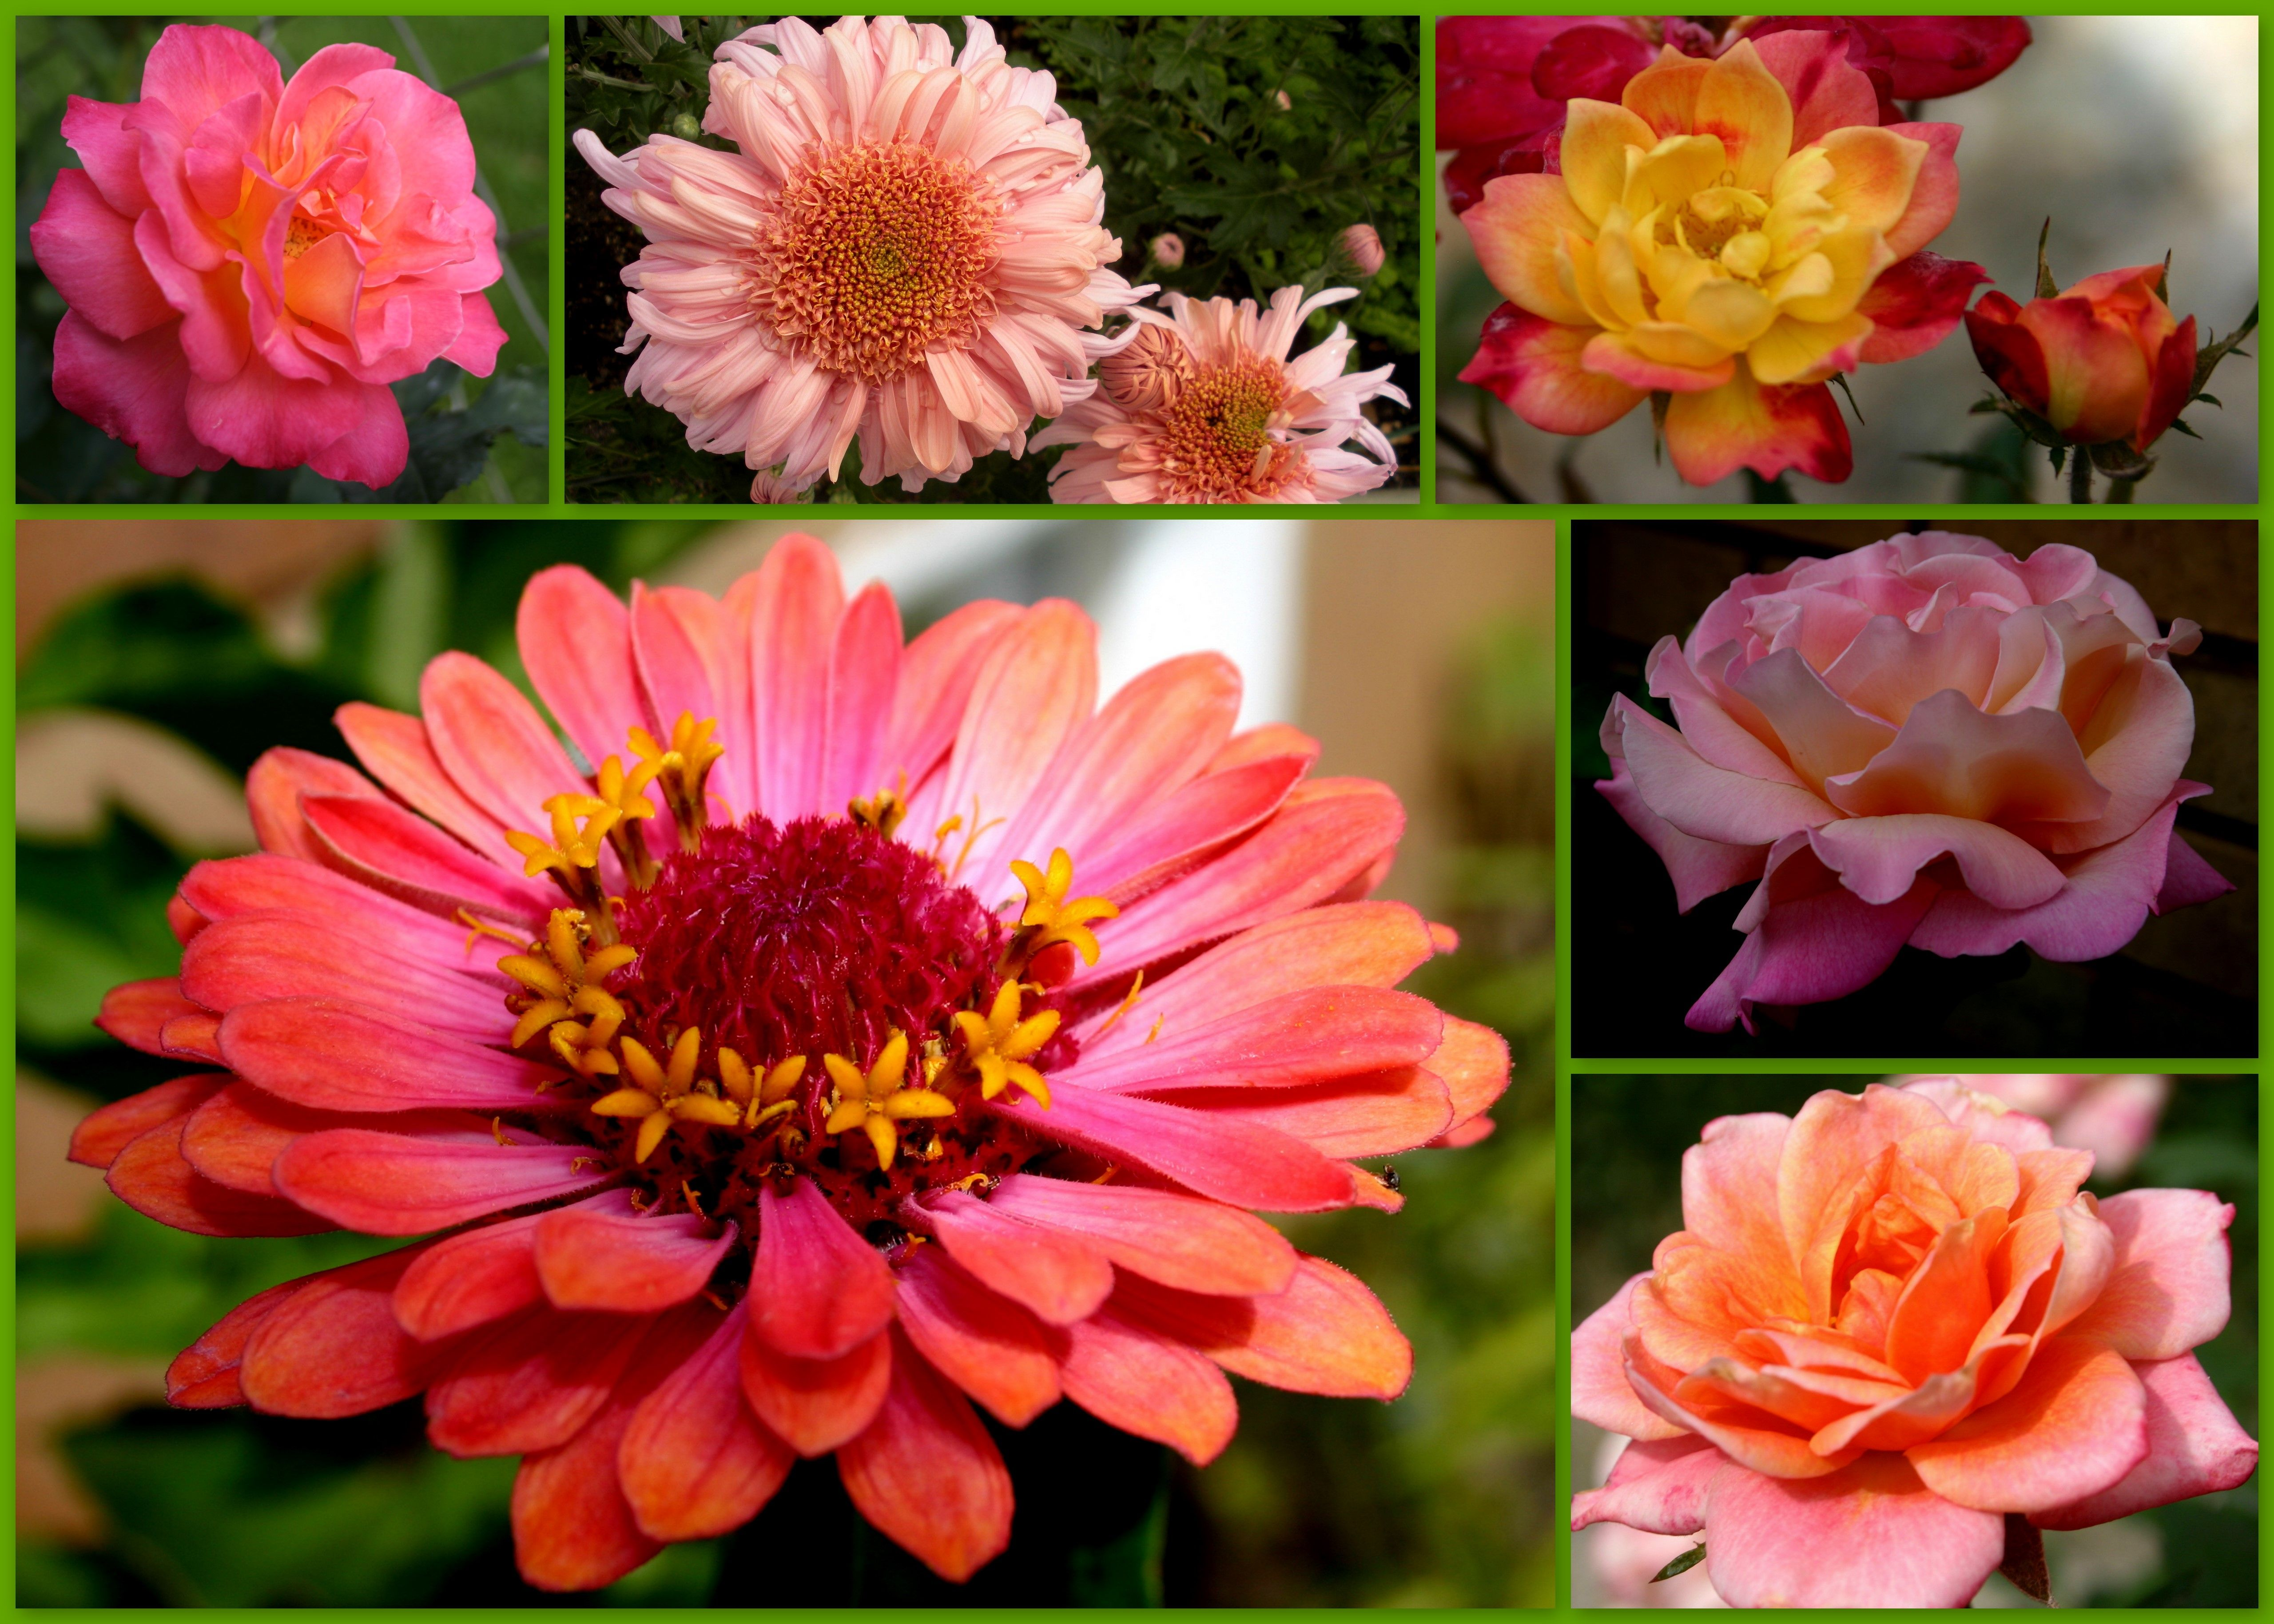 Lovely fall blooms from the garden